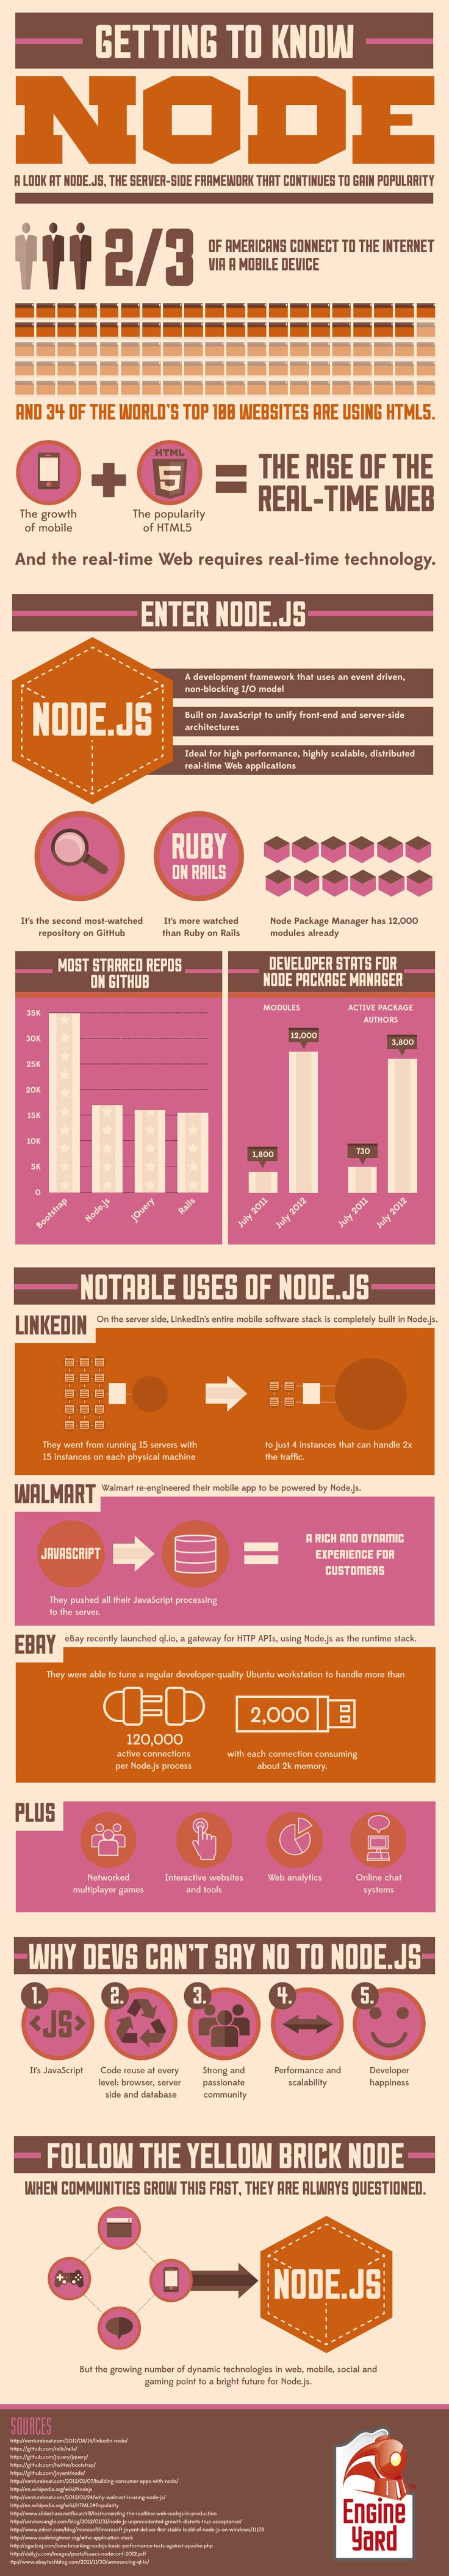 A look at node.js, server side framework that continues to gain popularity.